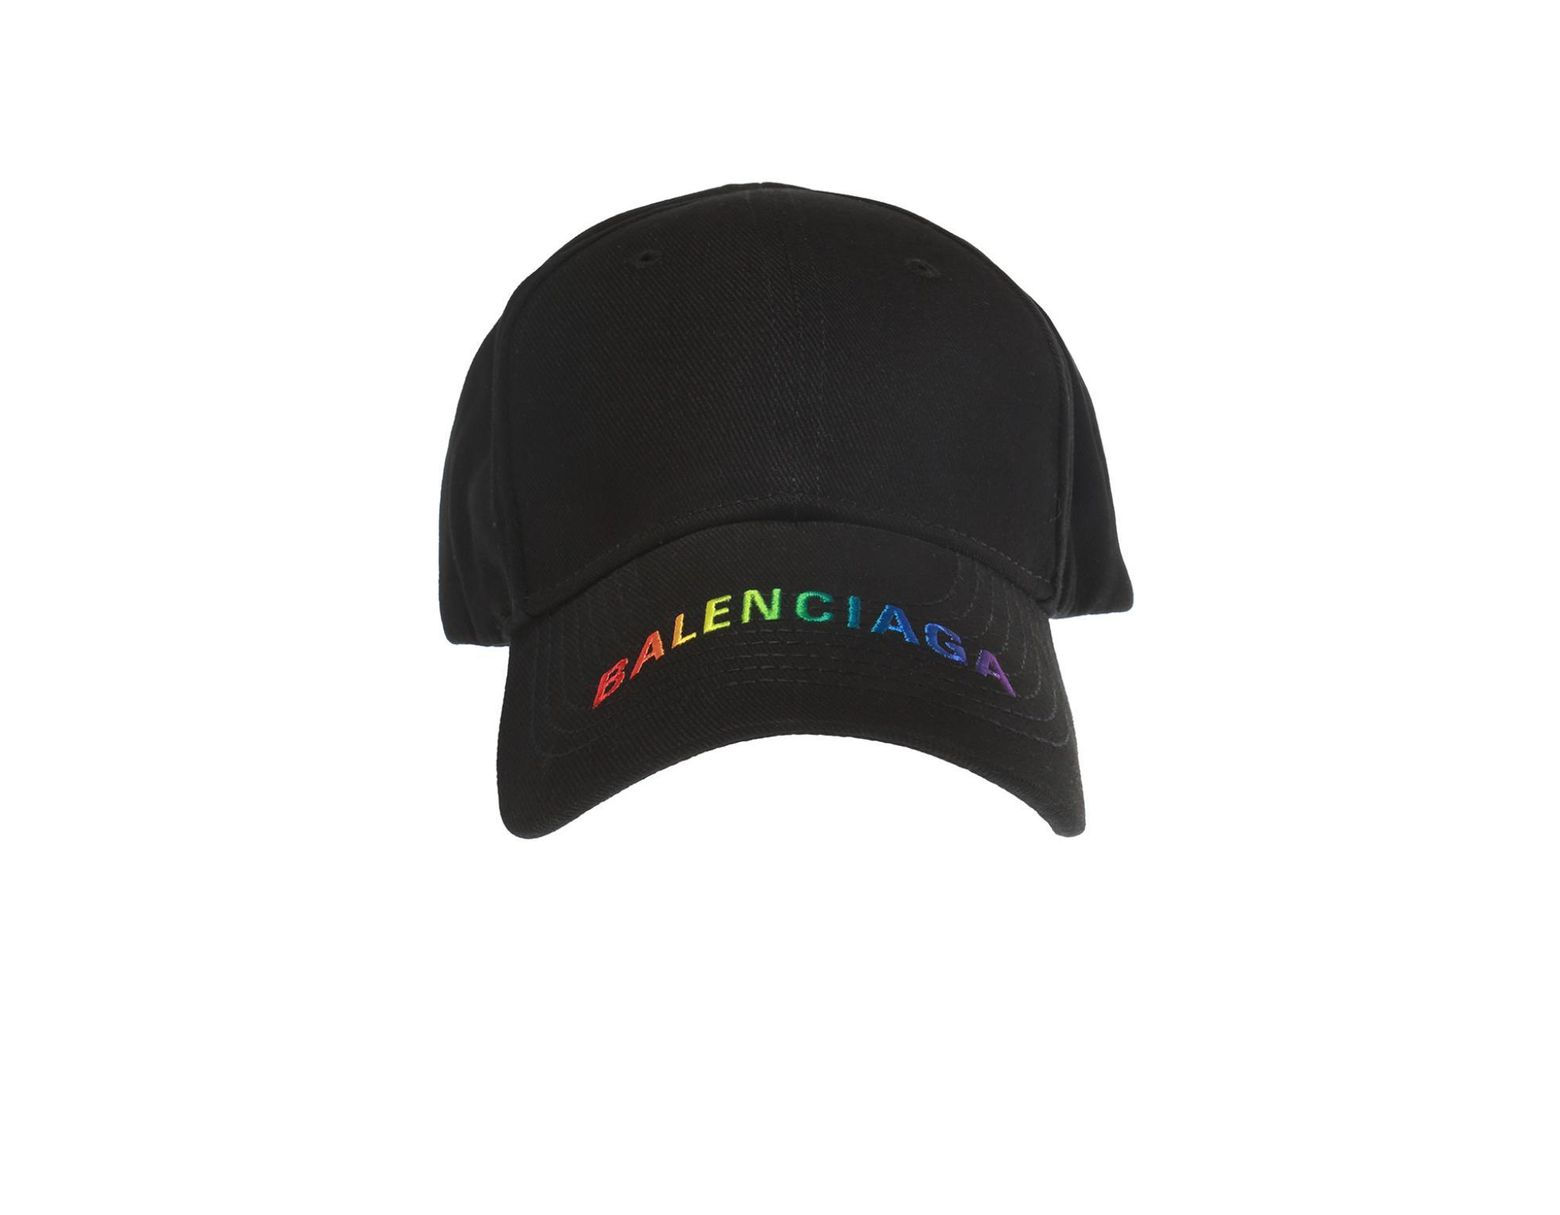 97128e4a Balenciaga Rainbow Cap in Black - Save 30% - Lyst